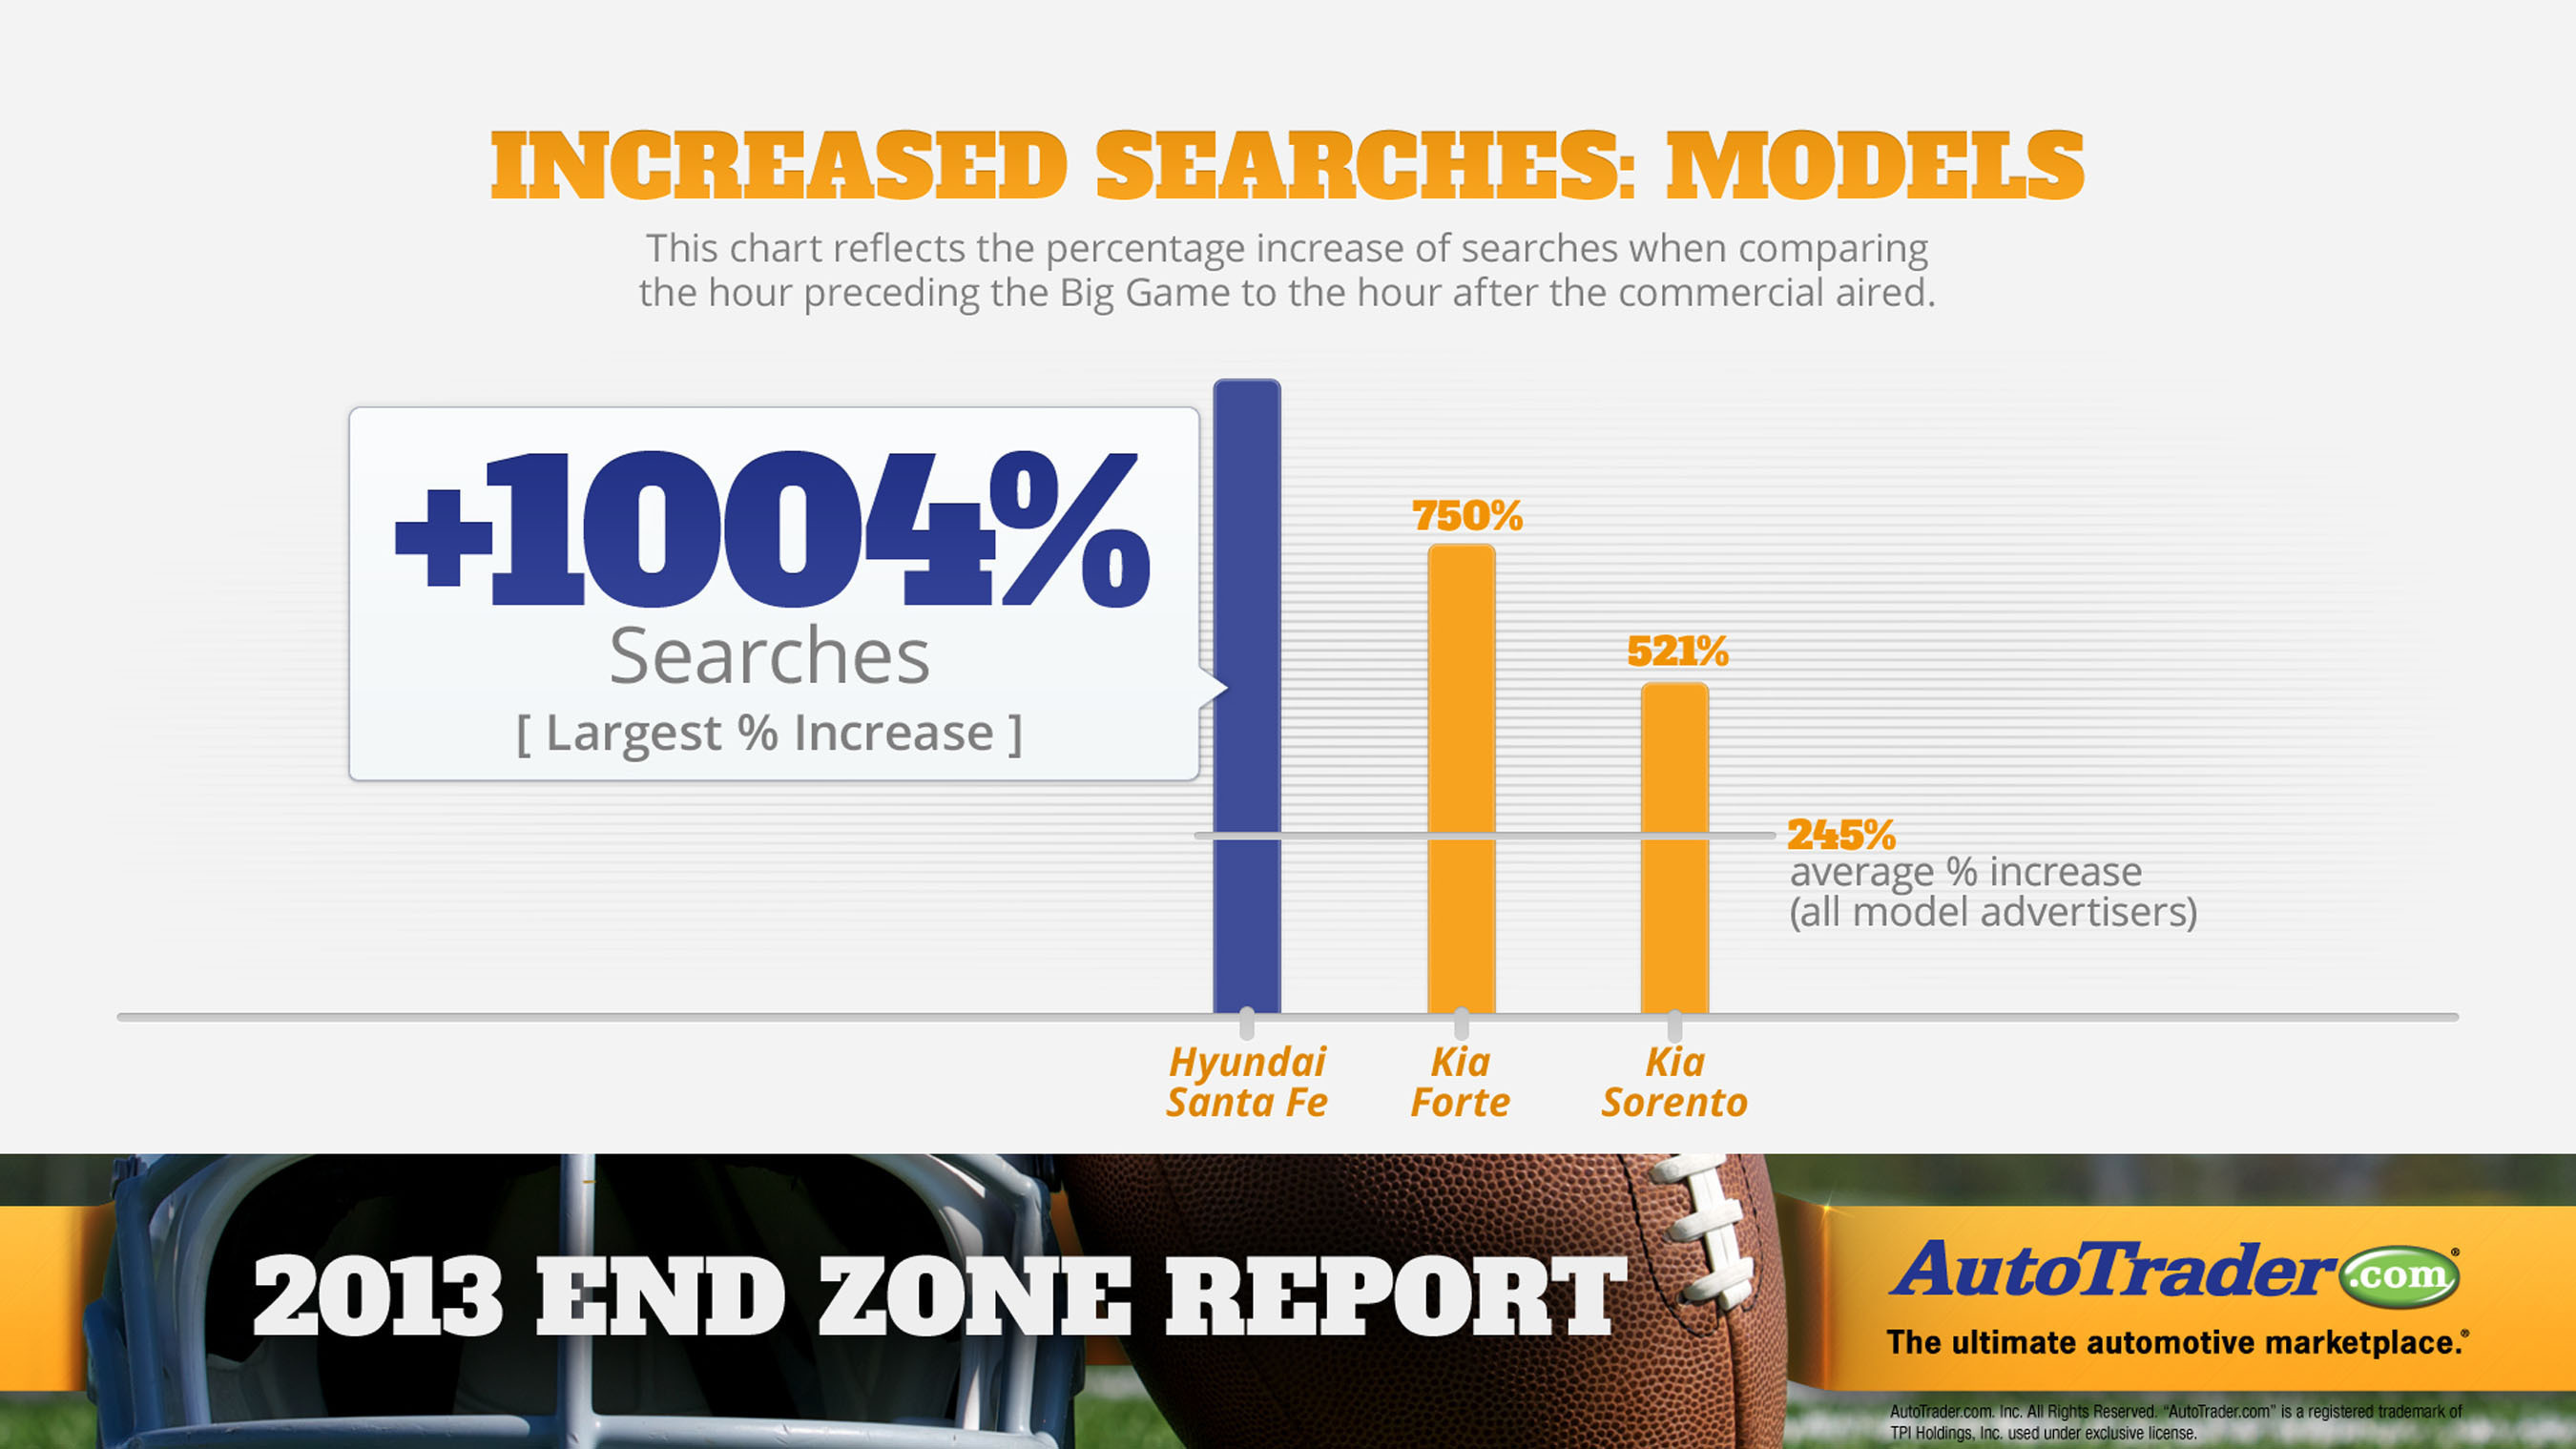 On average, vehicles that were advertised during the game saw a 245% increase in search activity on AutoTrader.com during the hour after their ads ran. The Hyundai Santa Fe saw the greatest increase in search activity, with a lift of 1,004%. The Kia Forte saw the second highest increase at 750%, while the Kia Sorento came in third at 521%.  (PRNewsFoto/AutoTrader.com)